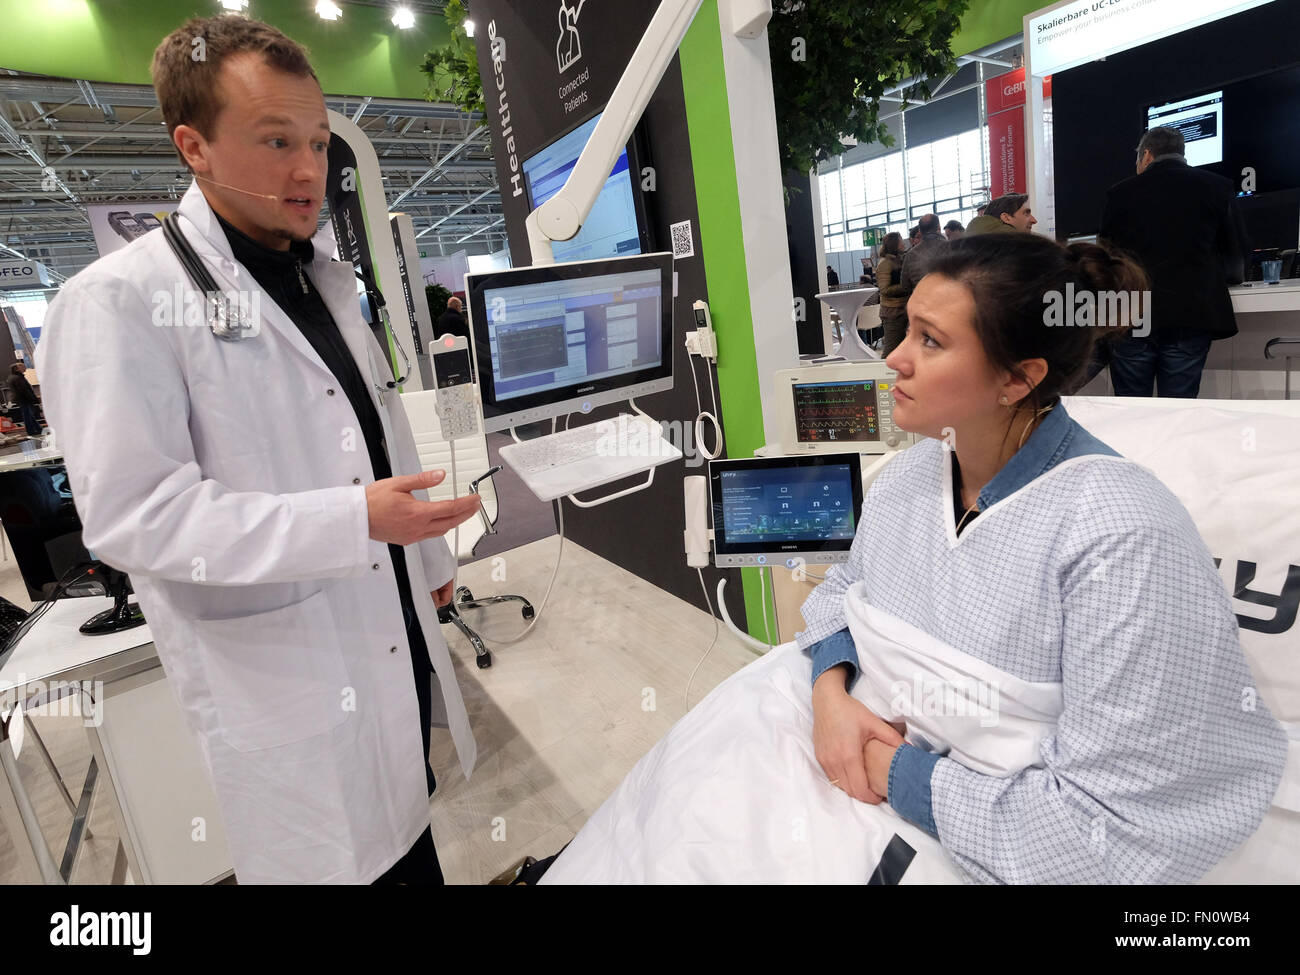 Hanover, Germany. 13th Mar, 2016. Two employees demonstrate the networked hospital bed of the future at the Unify - Stock Image